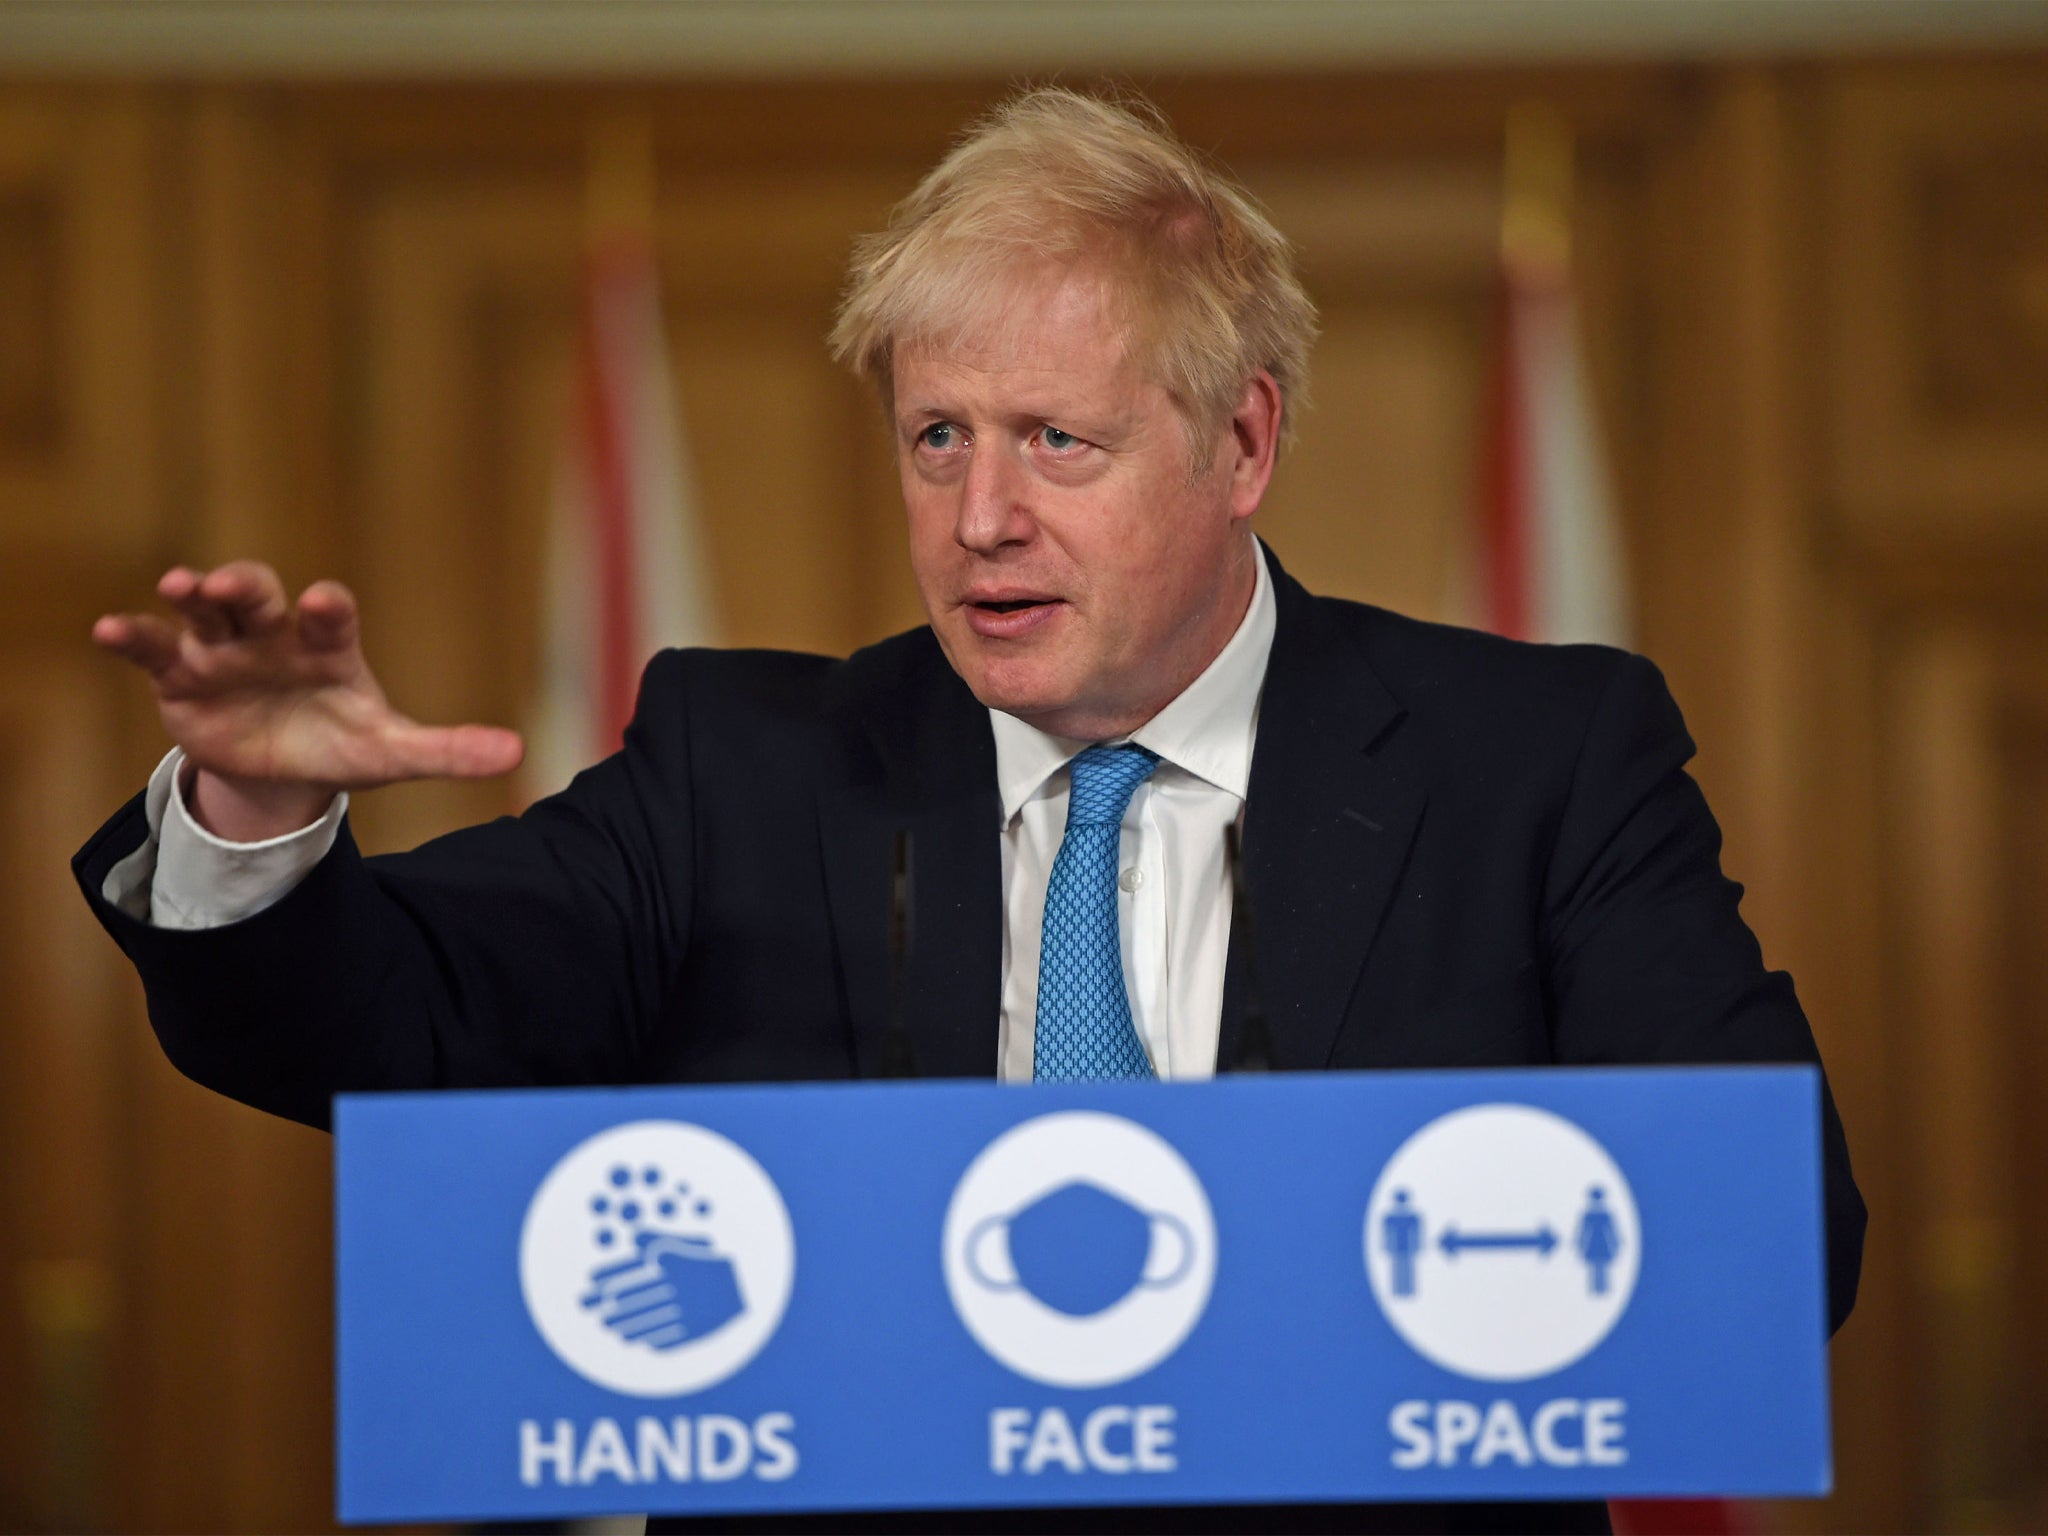 Boris Johnson has taken a political hit over the Manchester stand-off – whatever his ministers say